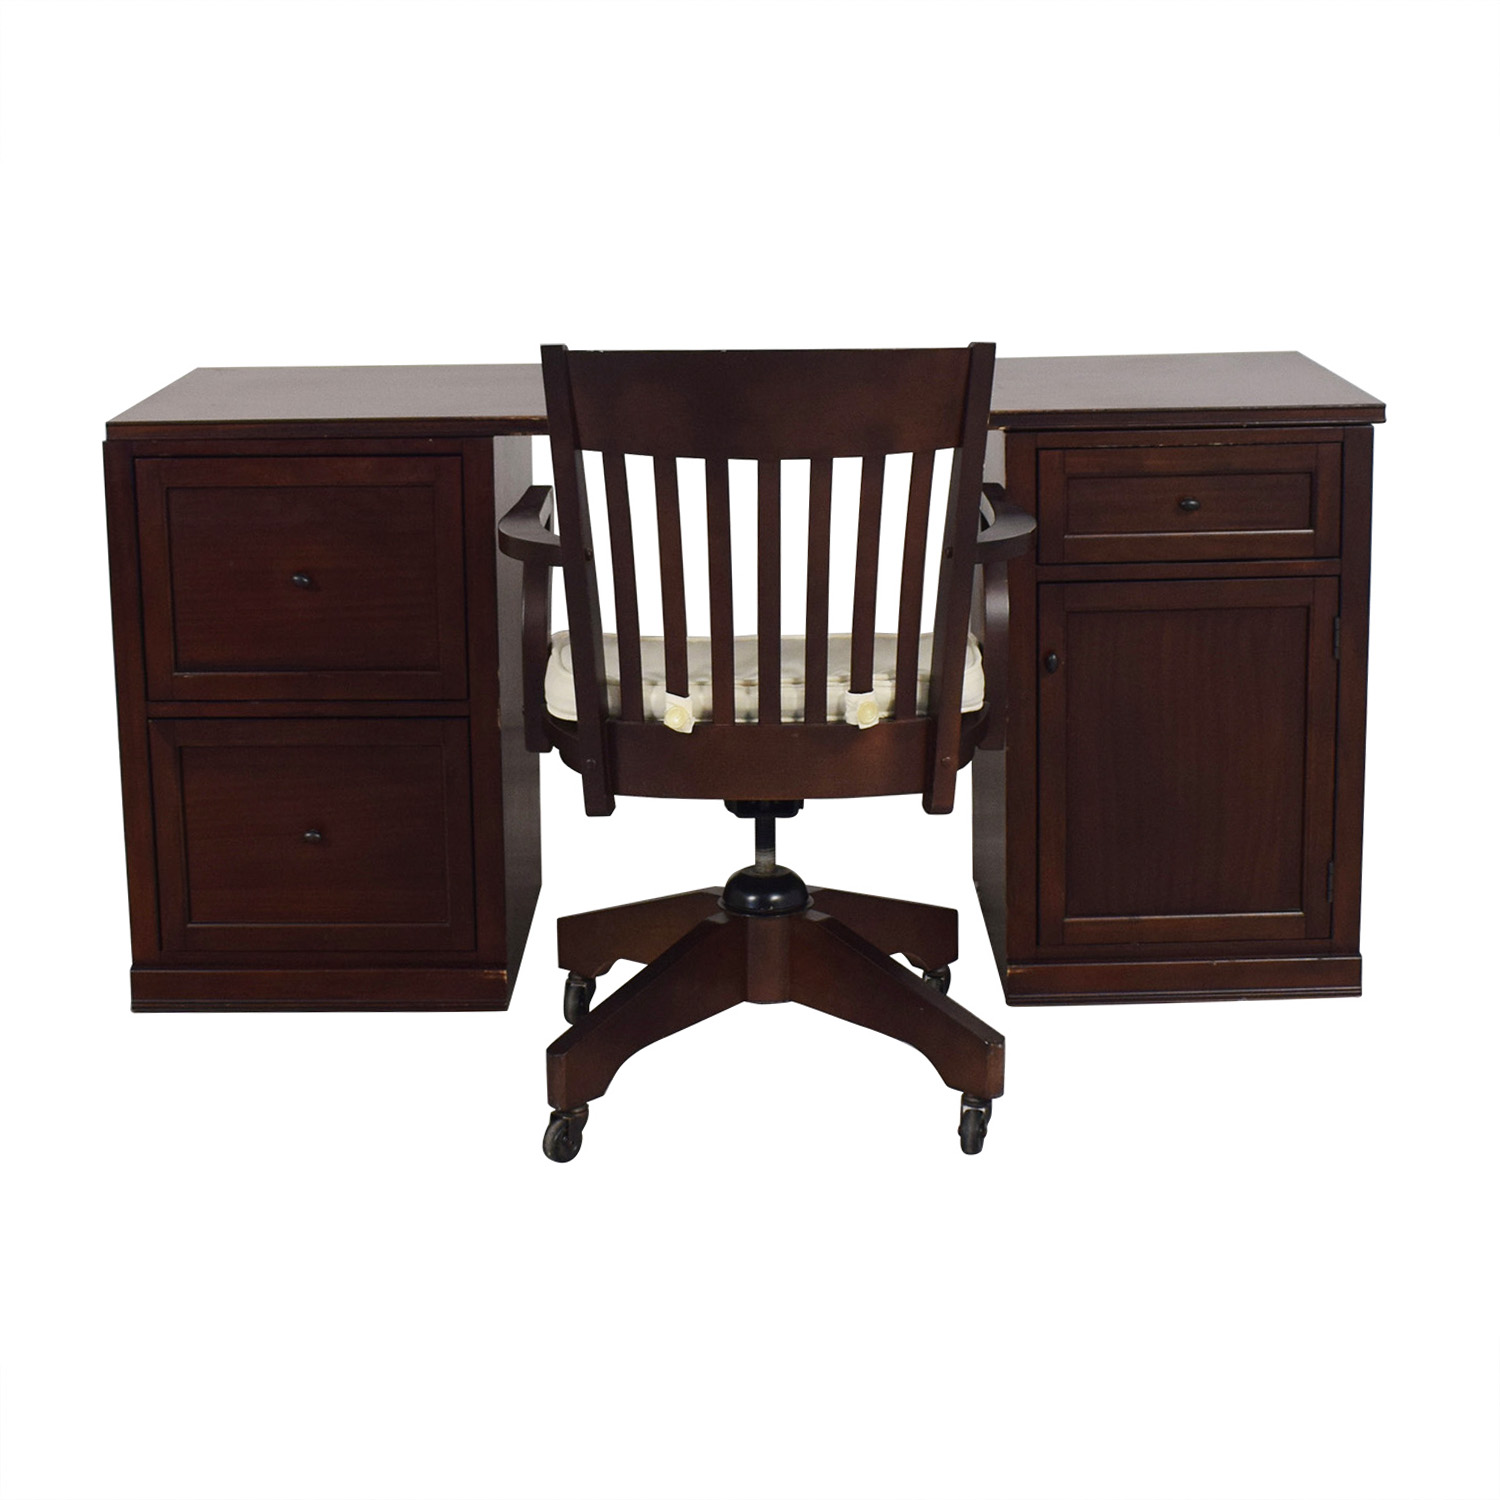 shop Pottery Barn Four-Drawer Desk and Chair on Castors Pottery Barn